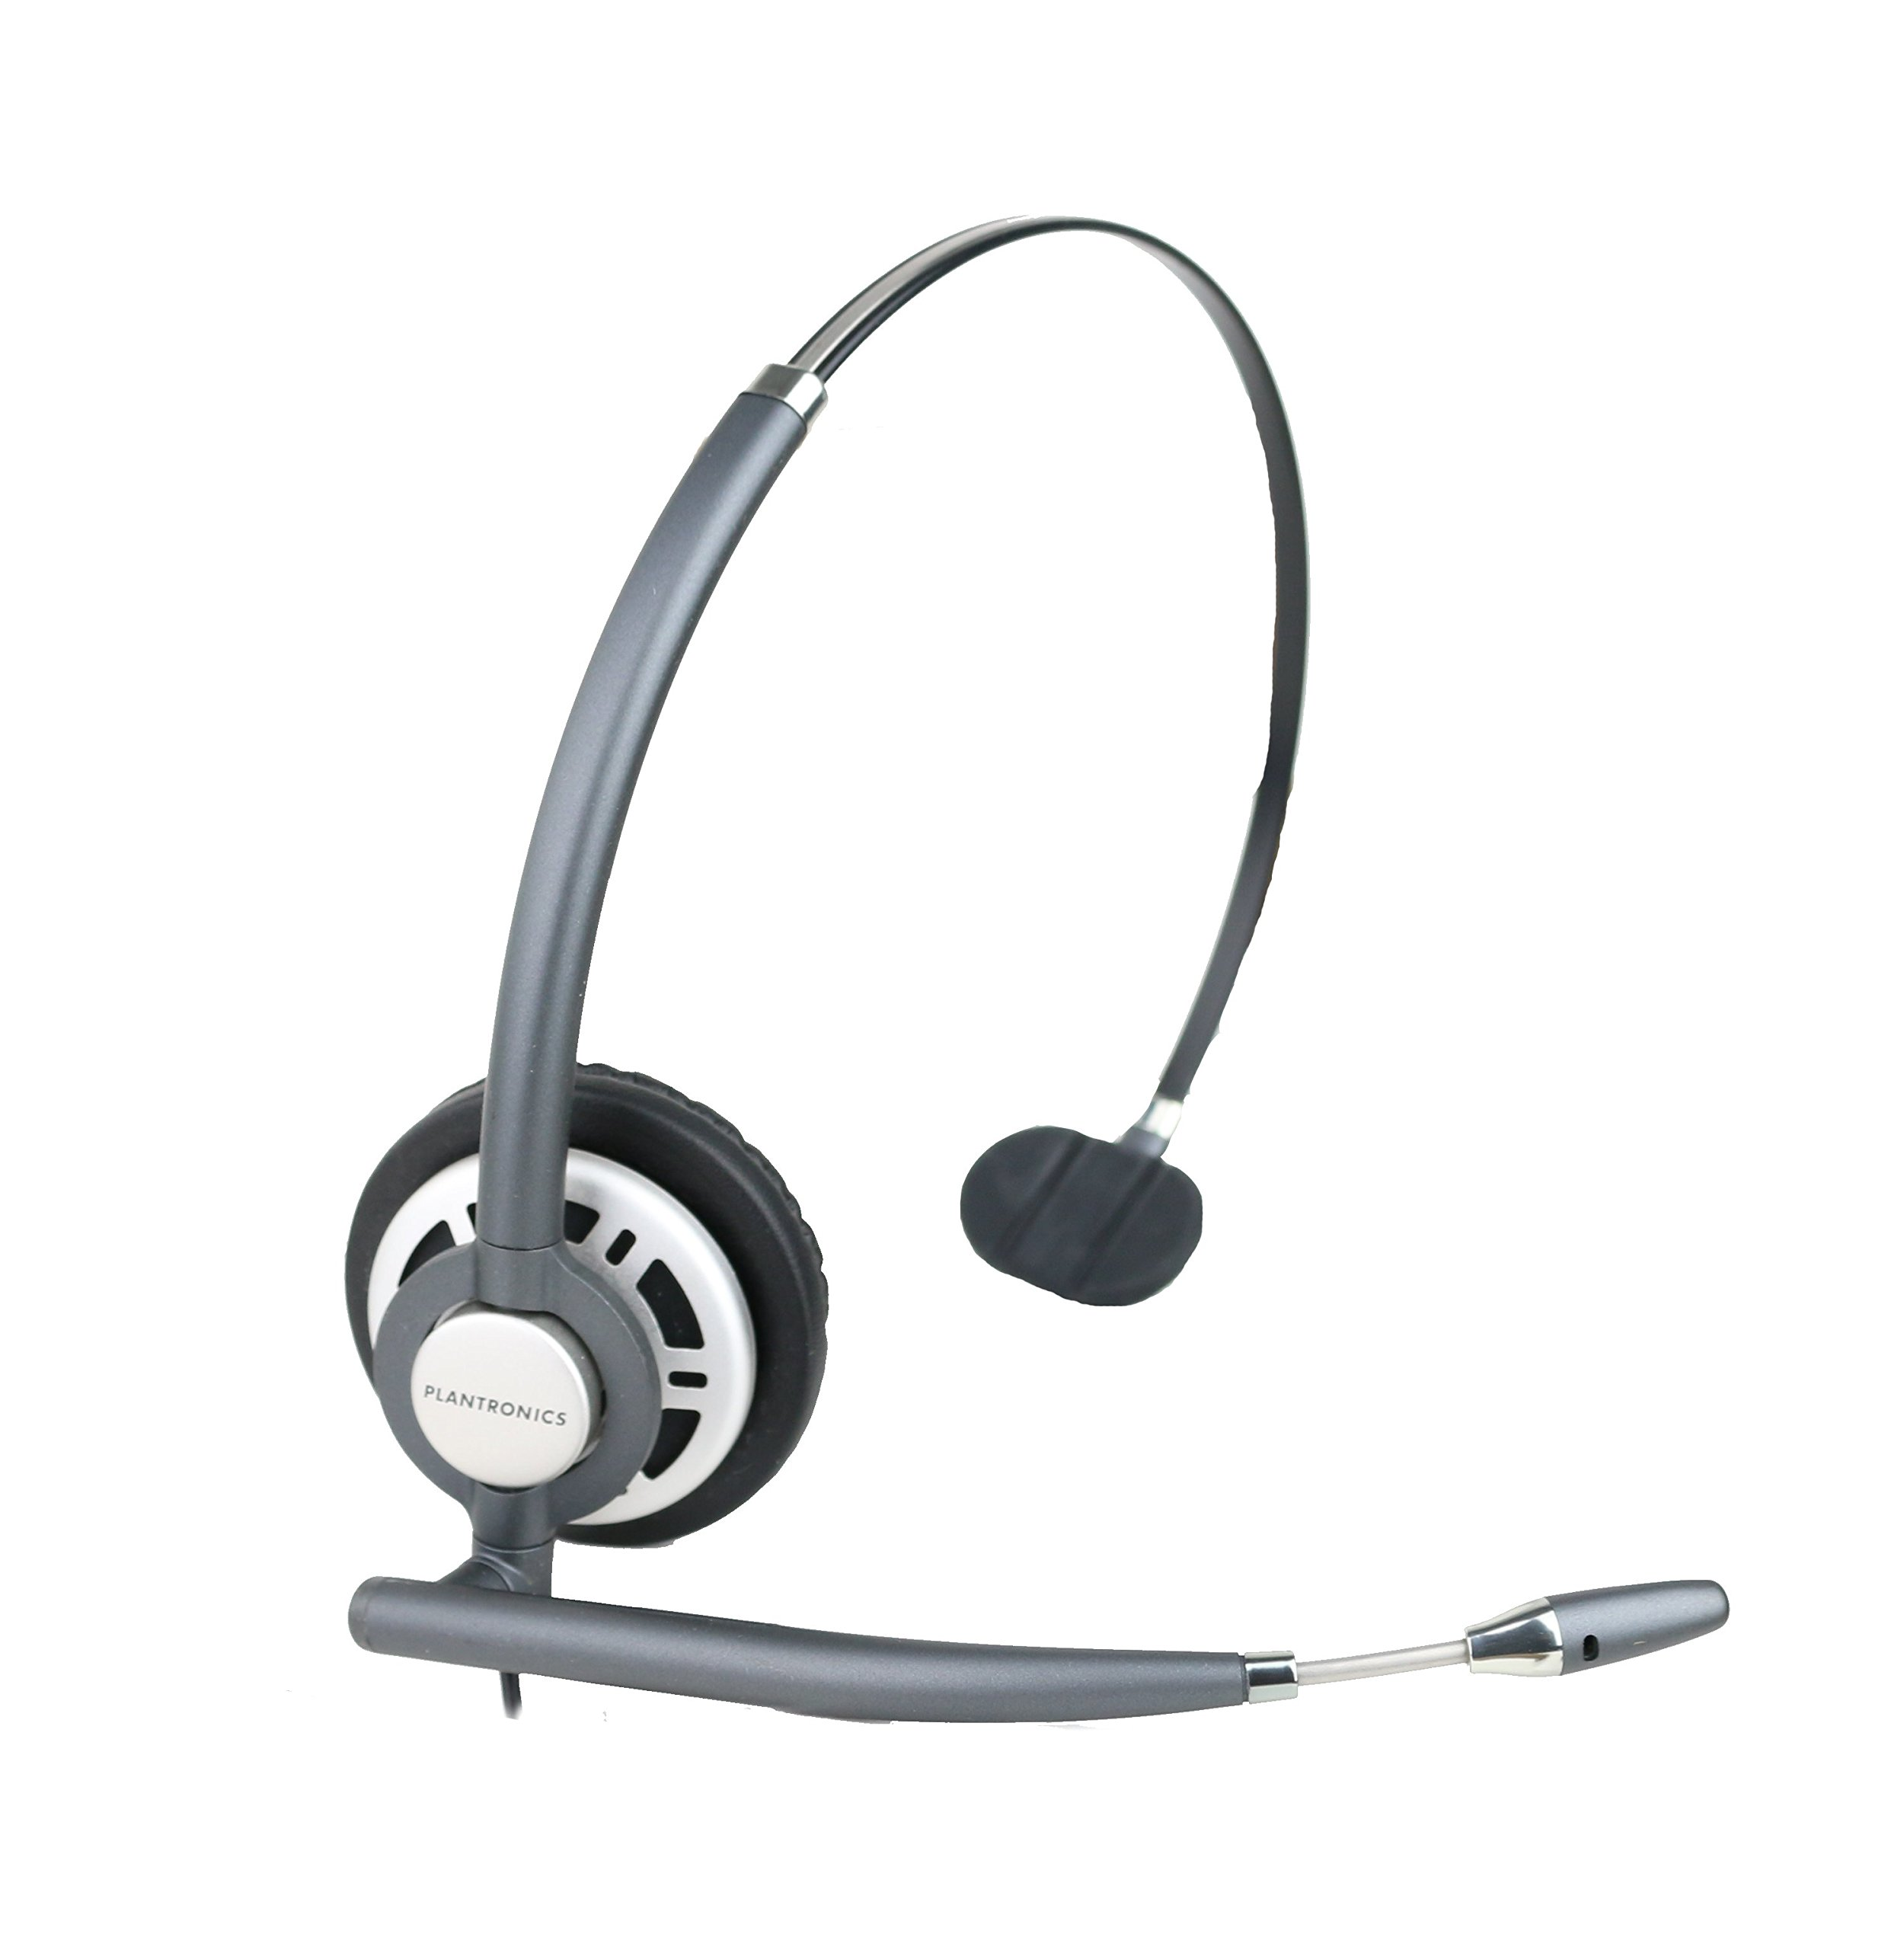 Plantronics HW710 Monaural Wired Office Headset (Renewed) by Plantronics